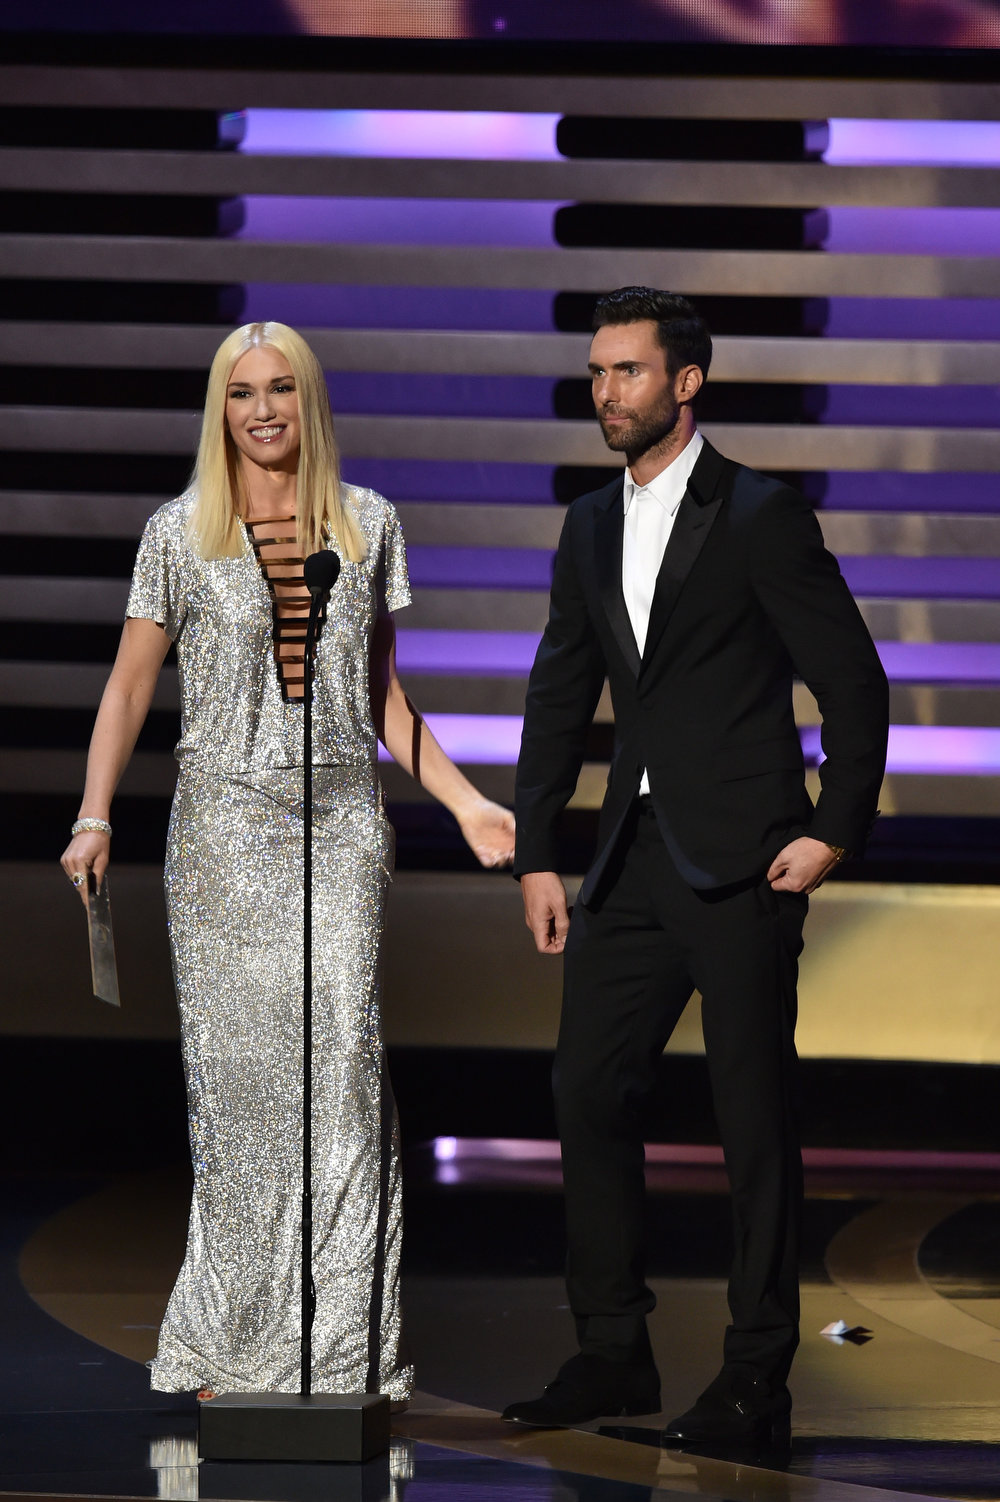 . Singer Gwen Stefani and singer/TV personality Adam Levine speak onstage at the 66th Annual Primetime Emmy Awards held at Nokia Theatre L.A. Live on August 25, 2014 in Los Angeles, California.  (Photo by Kevin Winter/Getty Images)